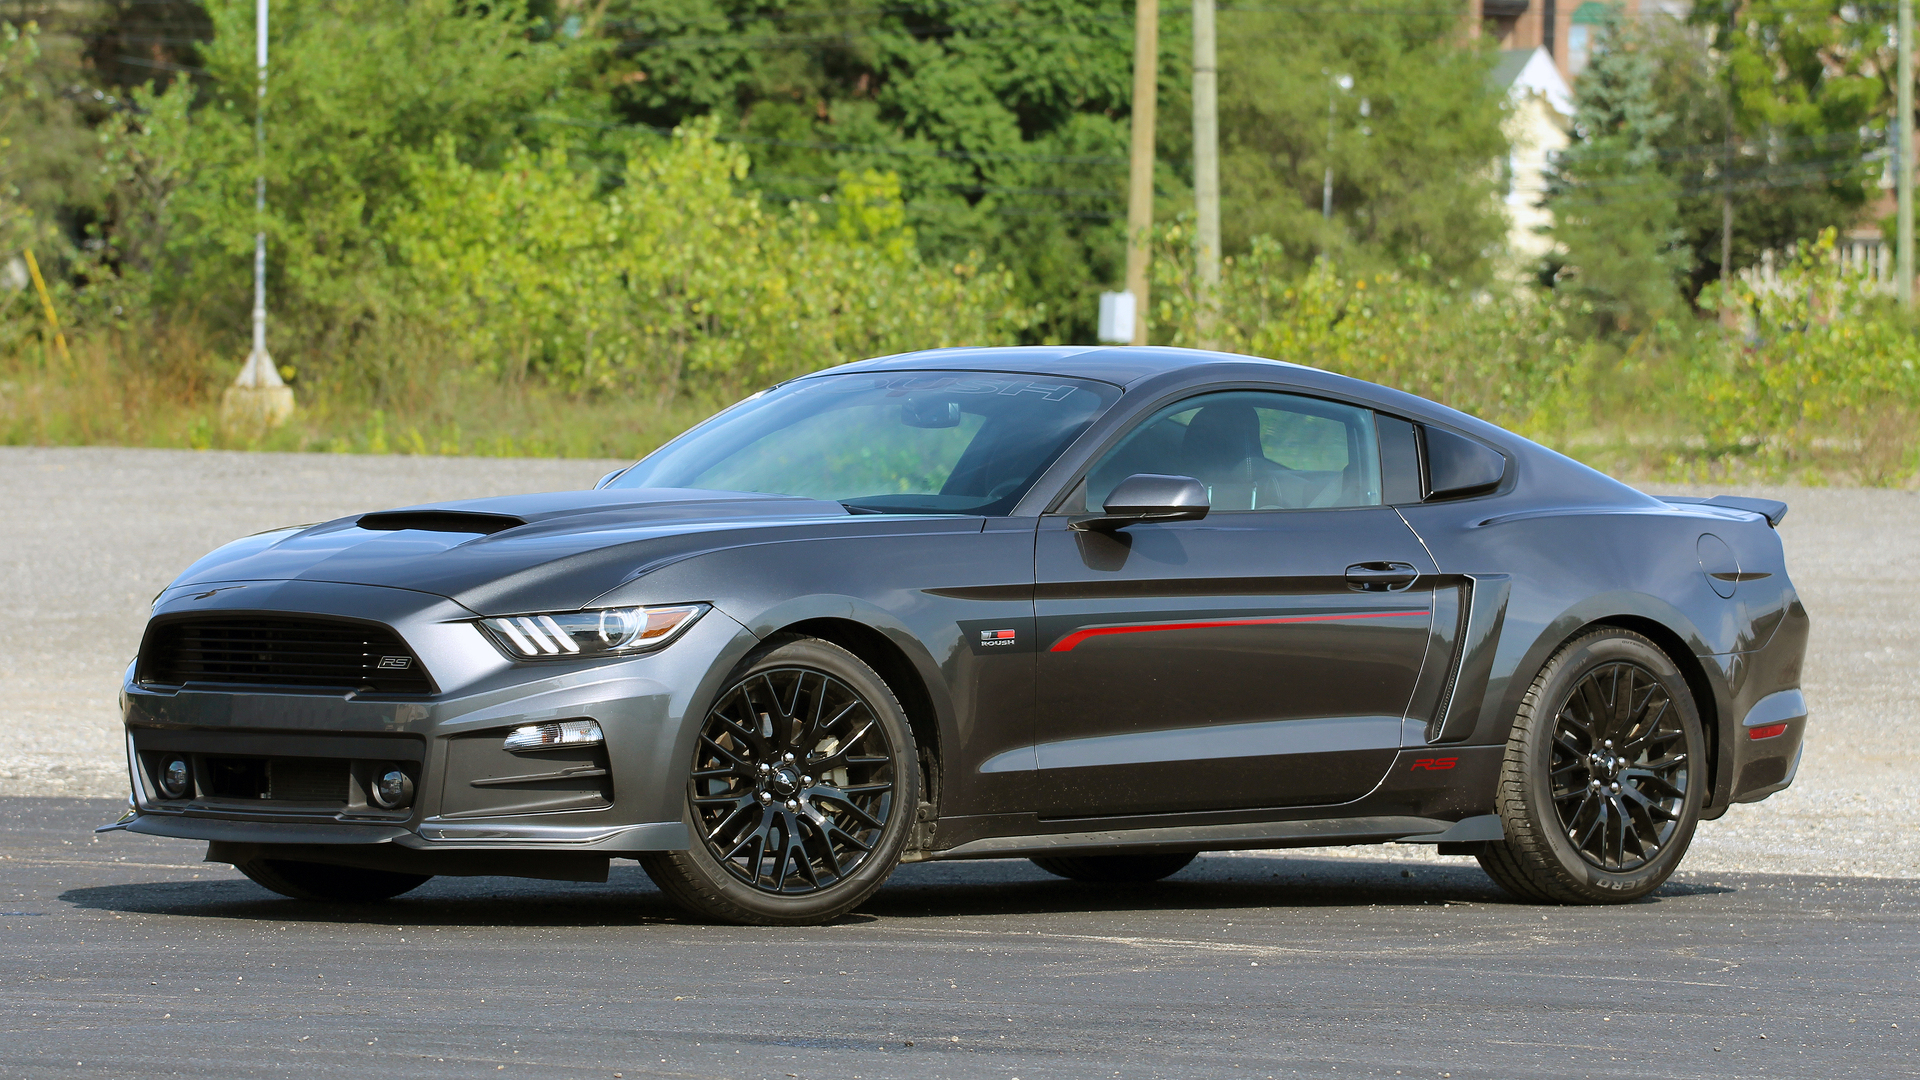 2017 roush rs mustang review review 2017 roush rs mustang 2017 Mustang EcoBoost Coupe at webbmarketing.co